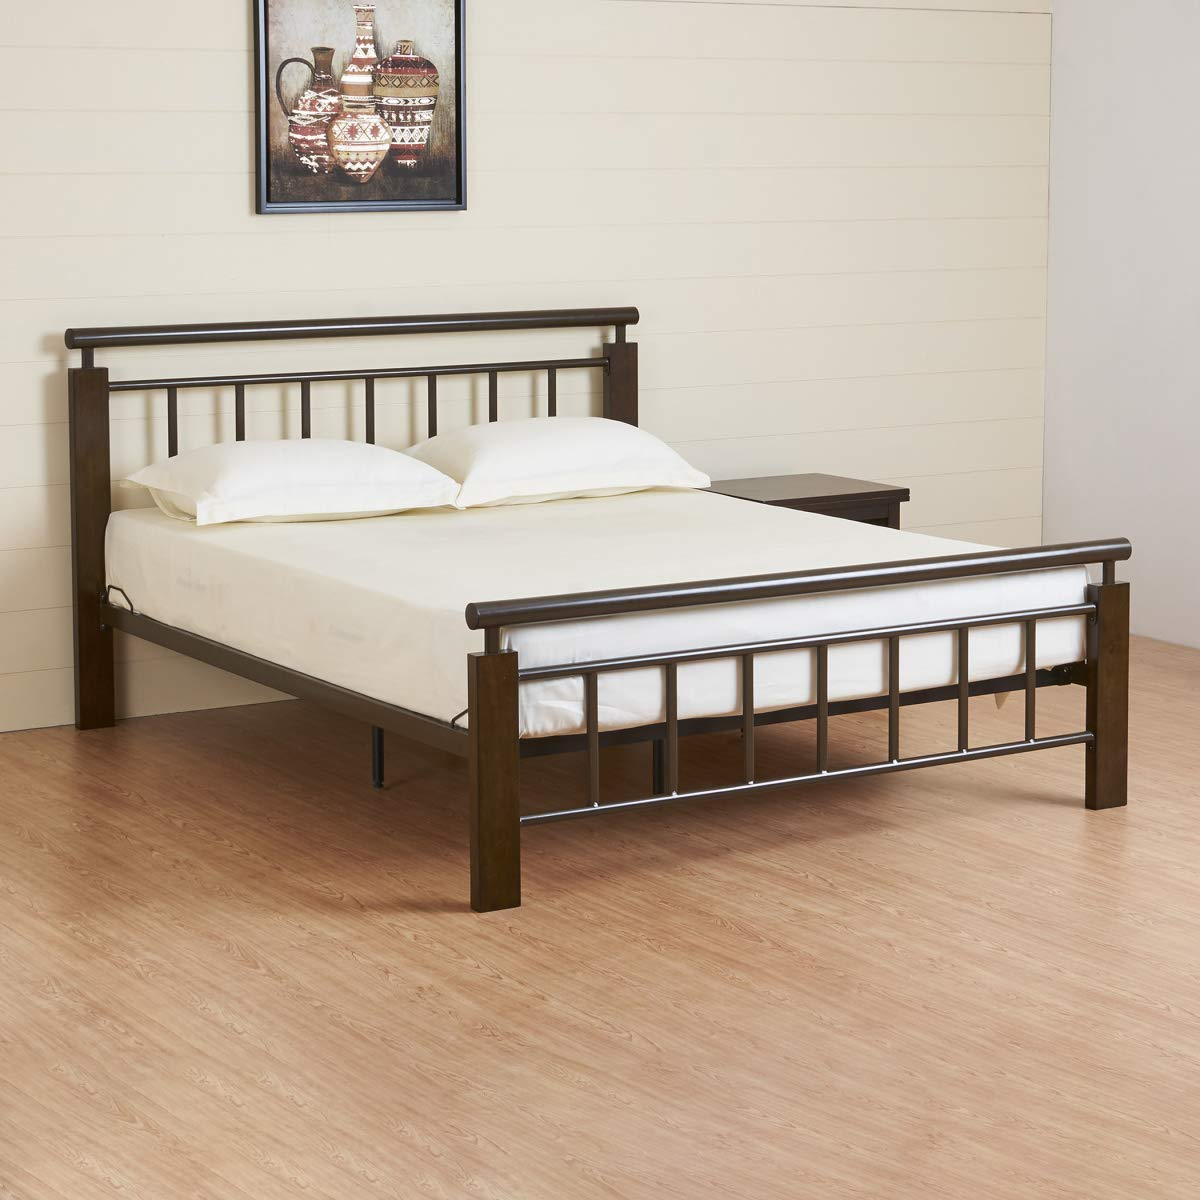 Home Centre Alex King Size Metal Bed- 195X204 cms